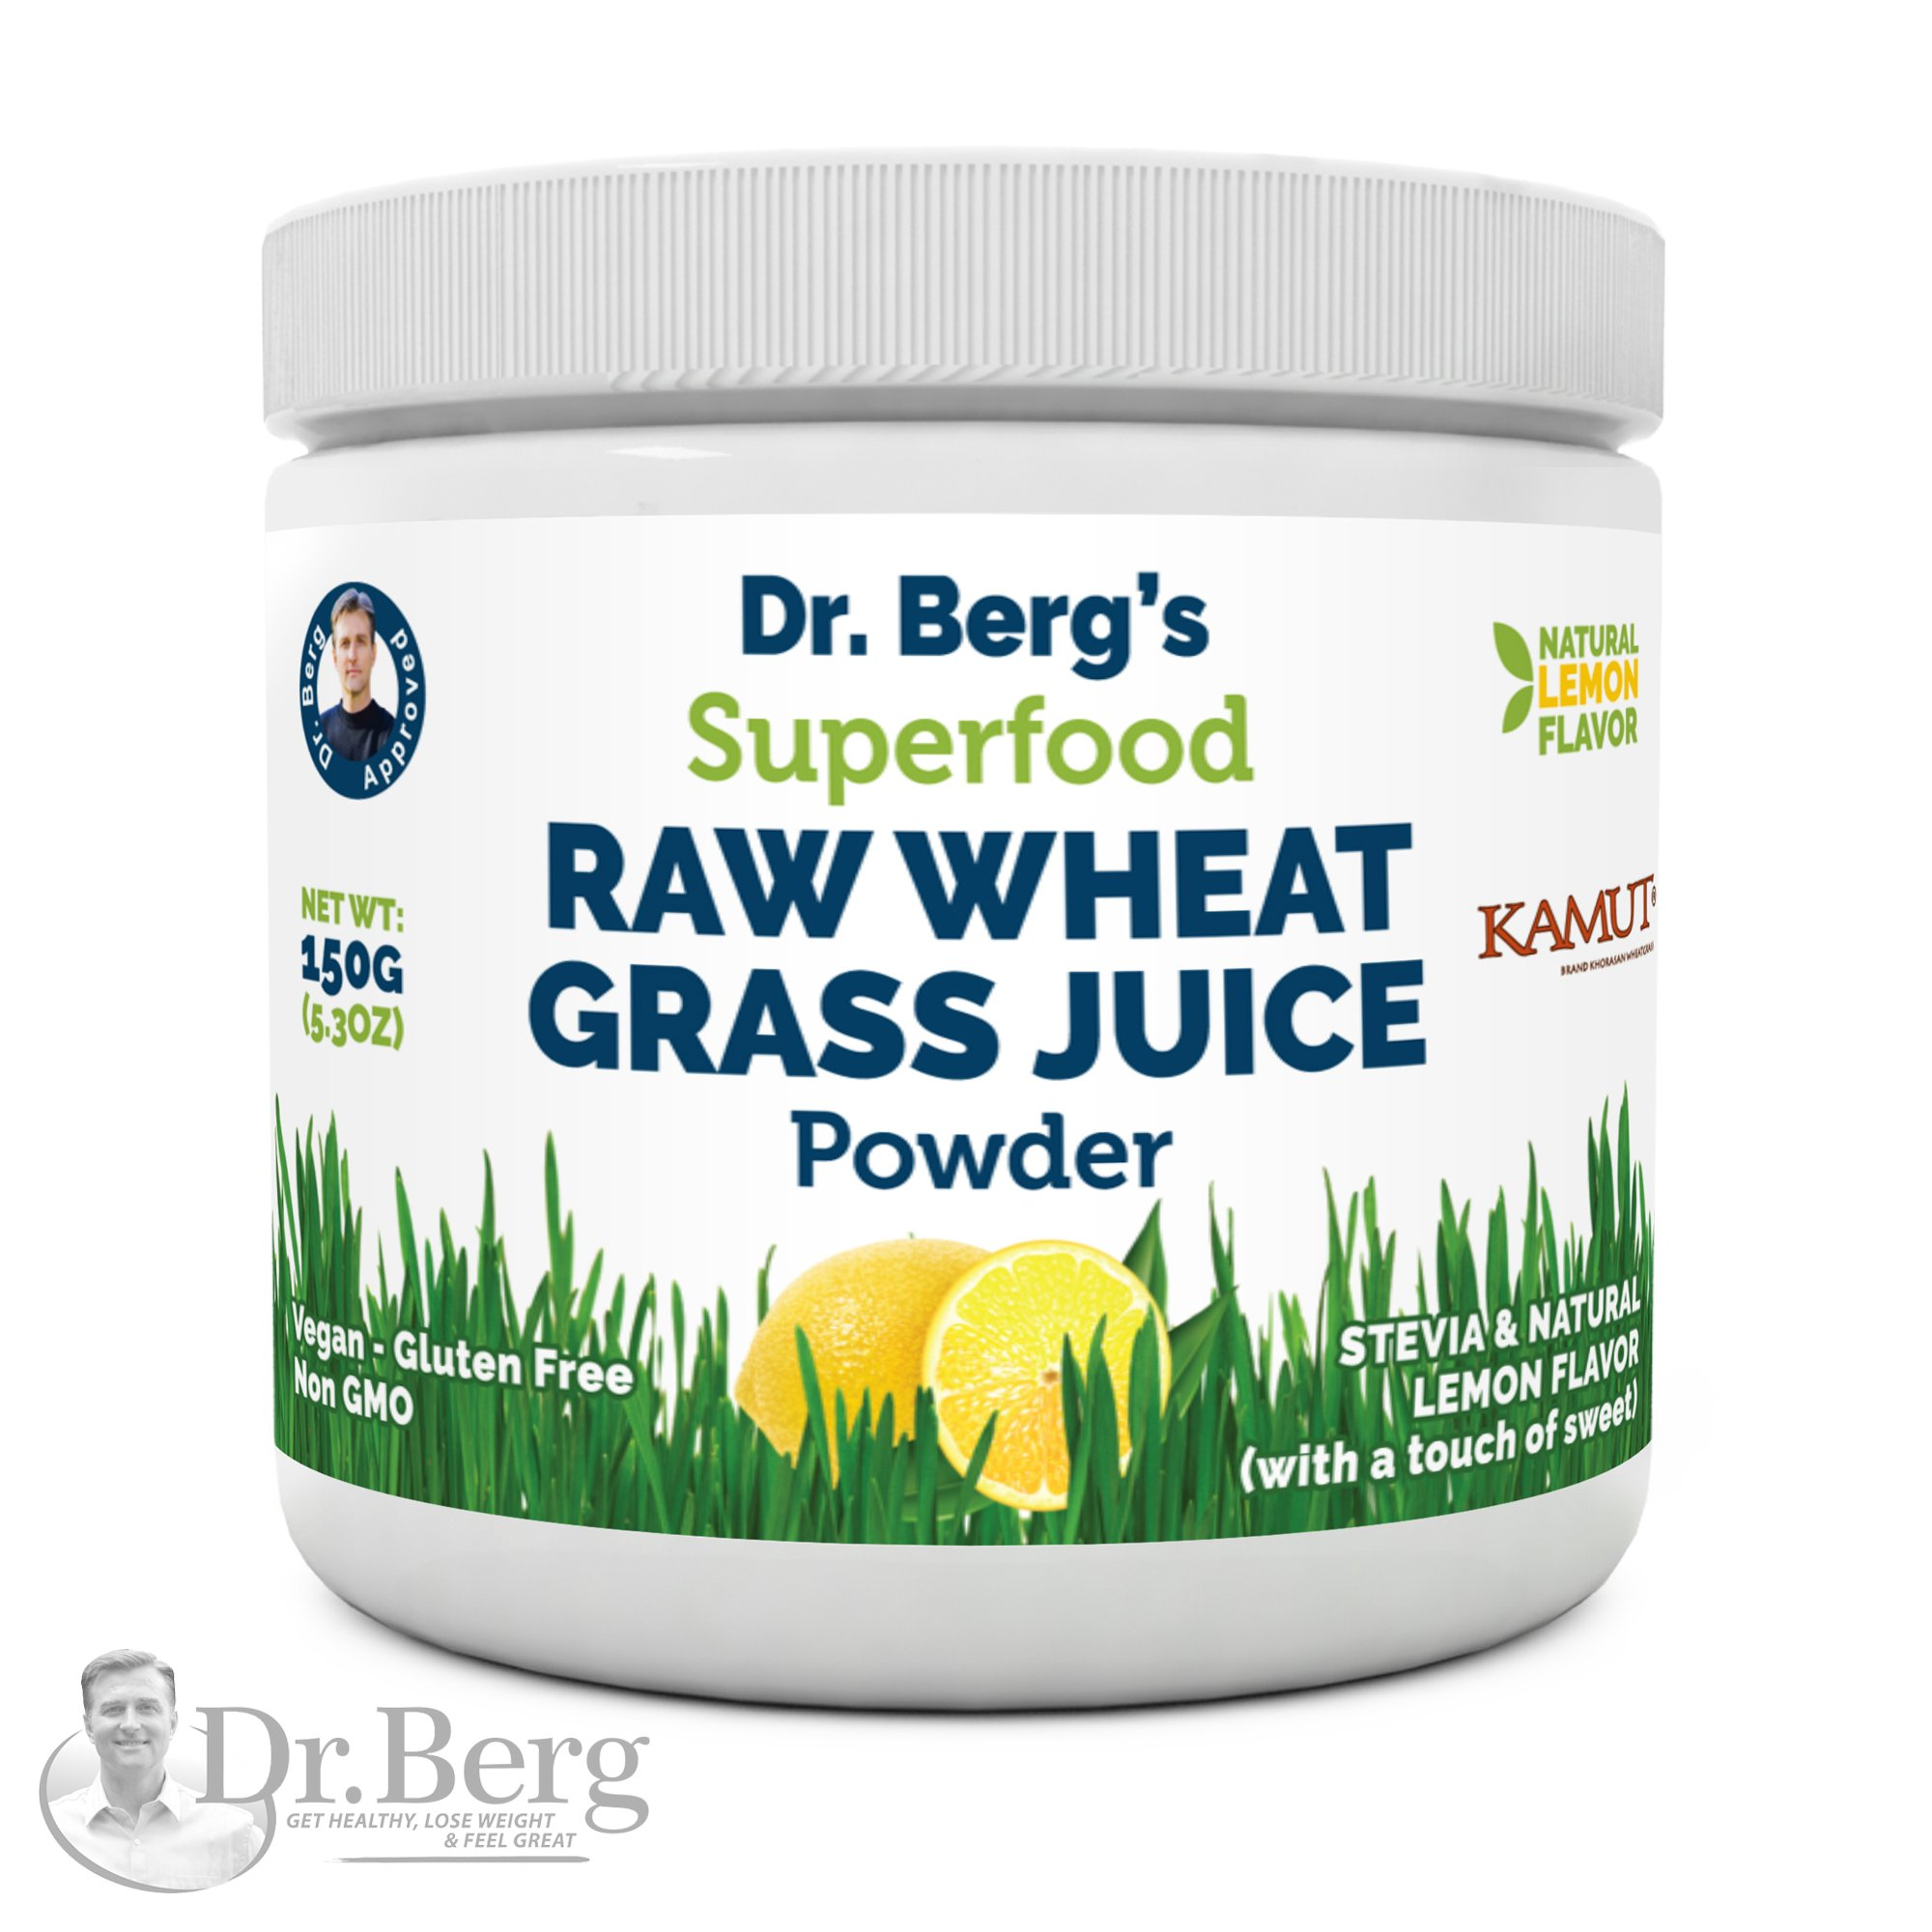 Dr. Berg's Natural Lemon Flavored Wheat Grass Powder with KamutTM -Raw & Ultra-Concentrated Nutrients -Rich in Vitamins, Chlorophyll & Trace Minerals (1 Pack)